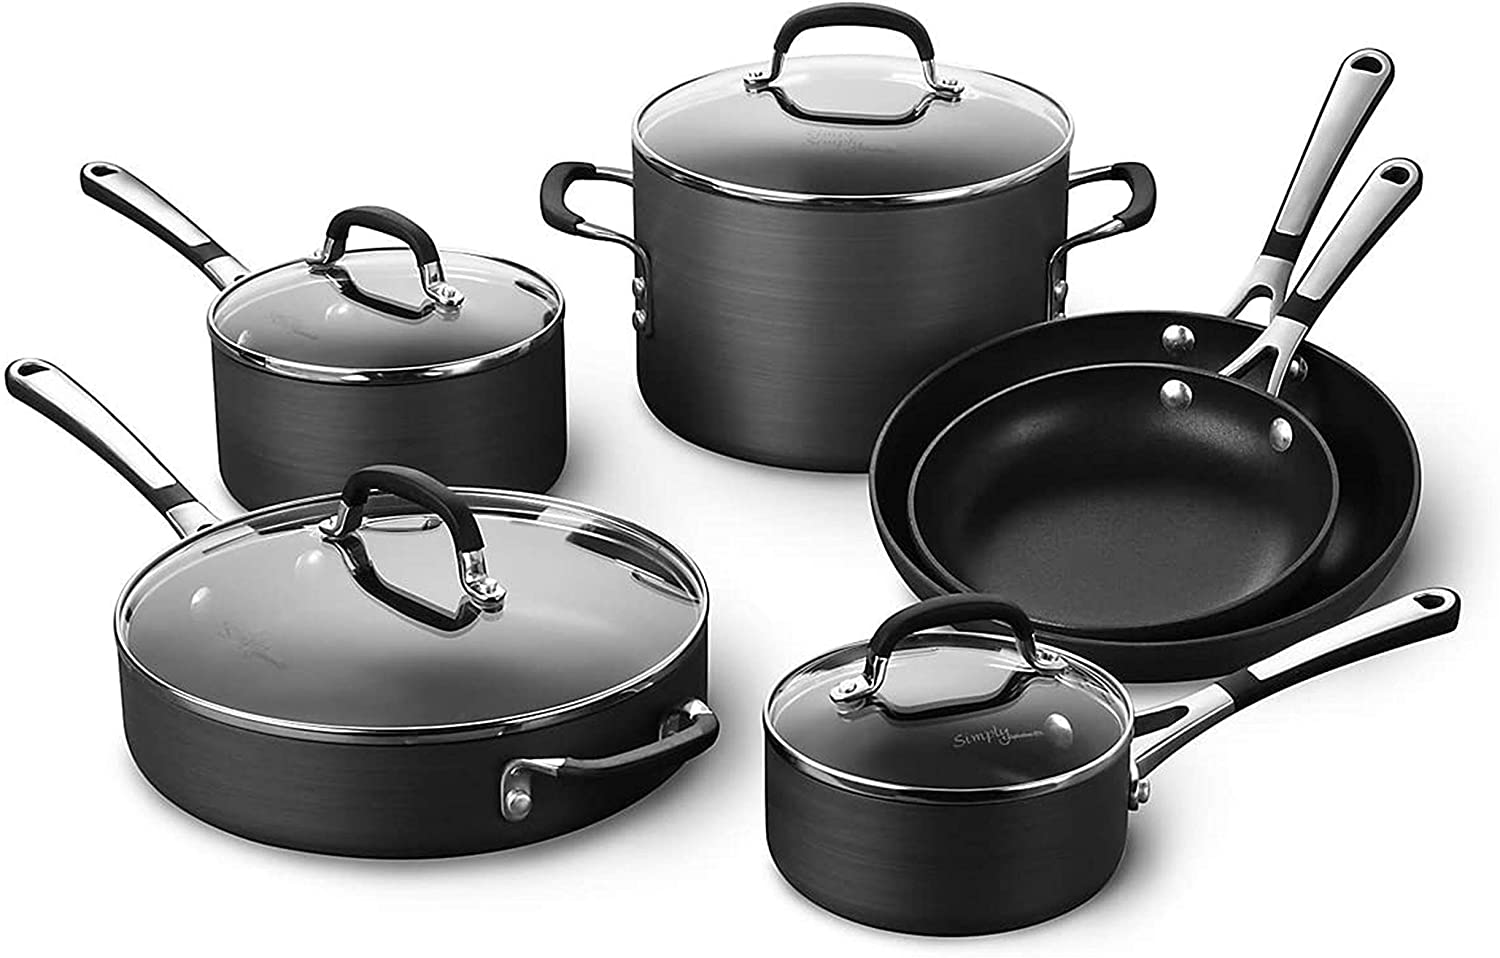 Calphalon Simply Pots & Pans Nonstick Cookware Set, 10-Piece